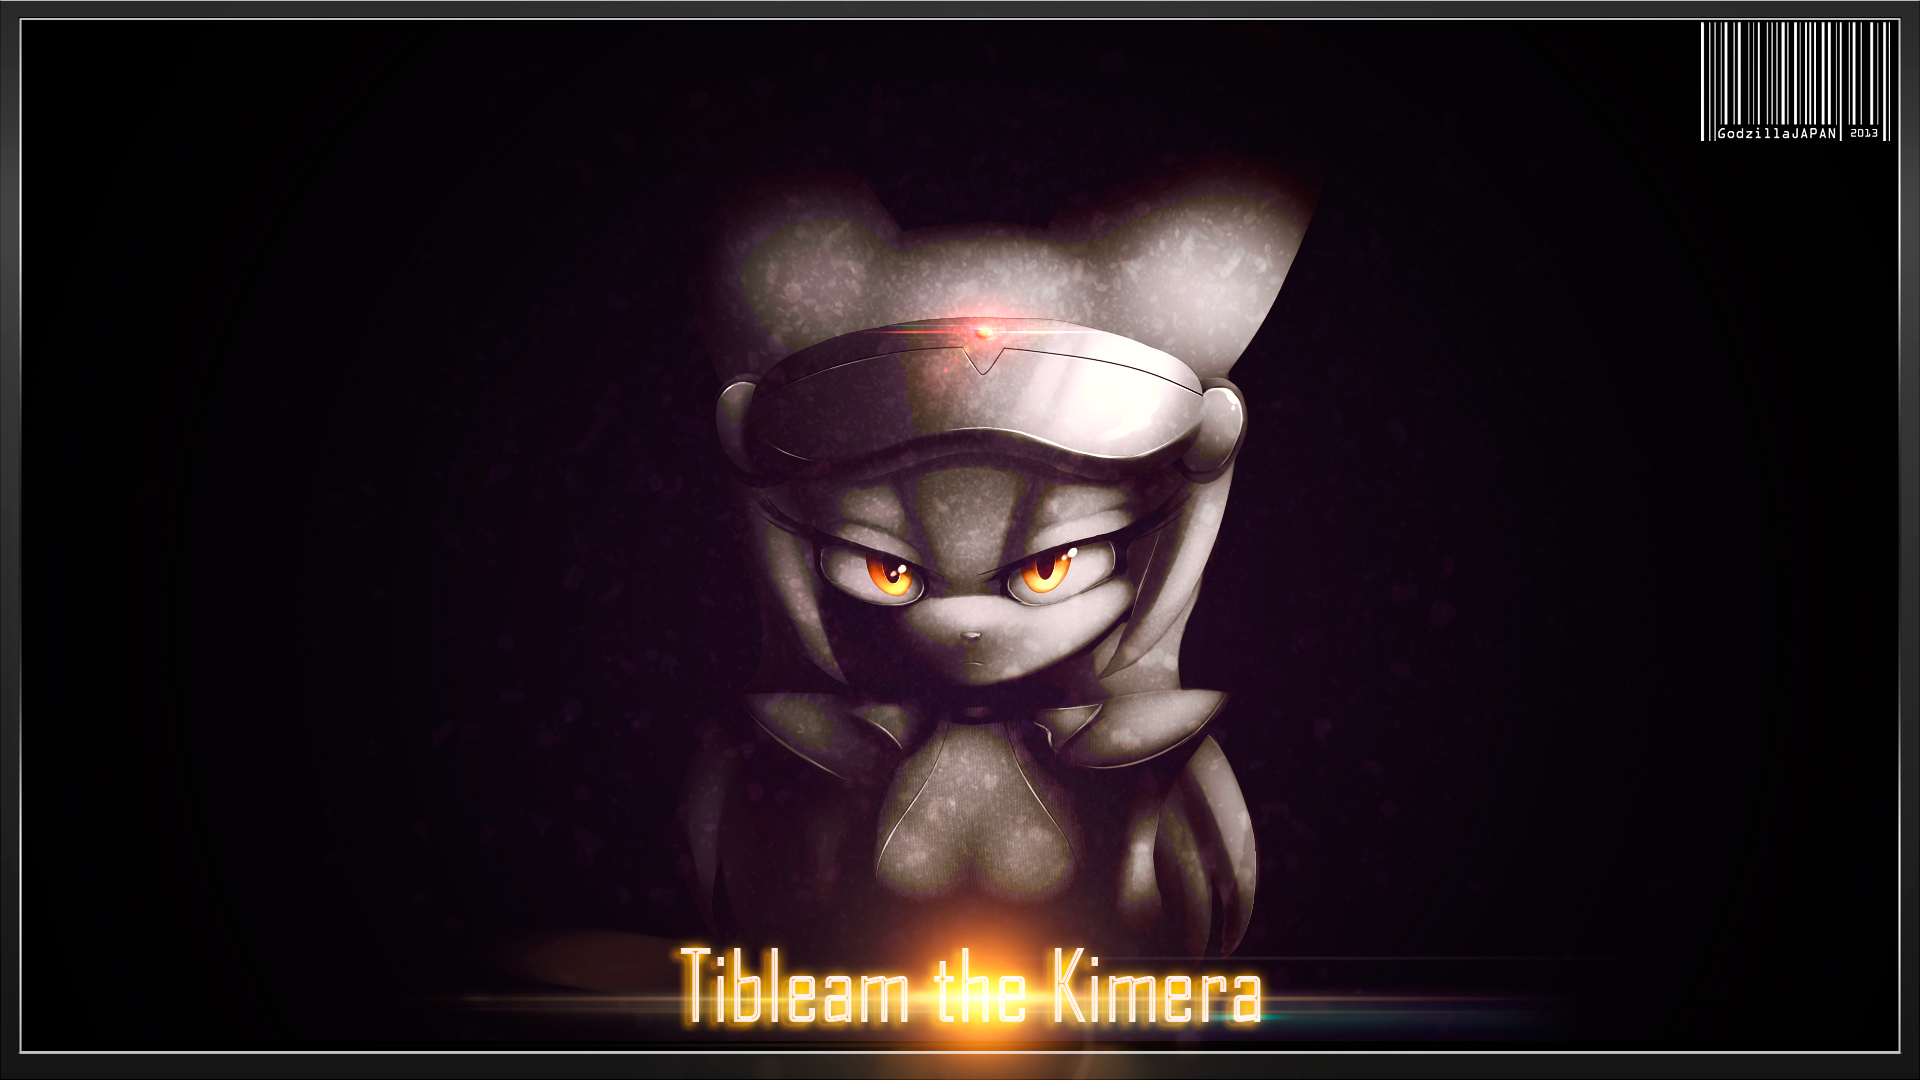 GIFT: TIBLEAM THE KIMERA by GodzillaJAPAN